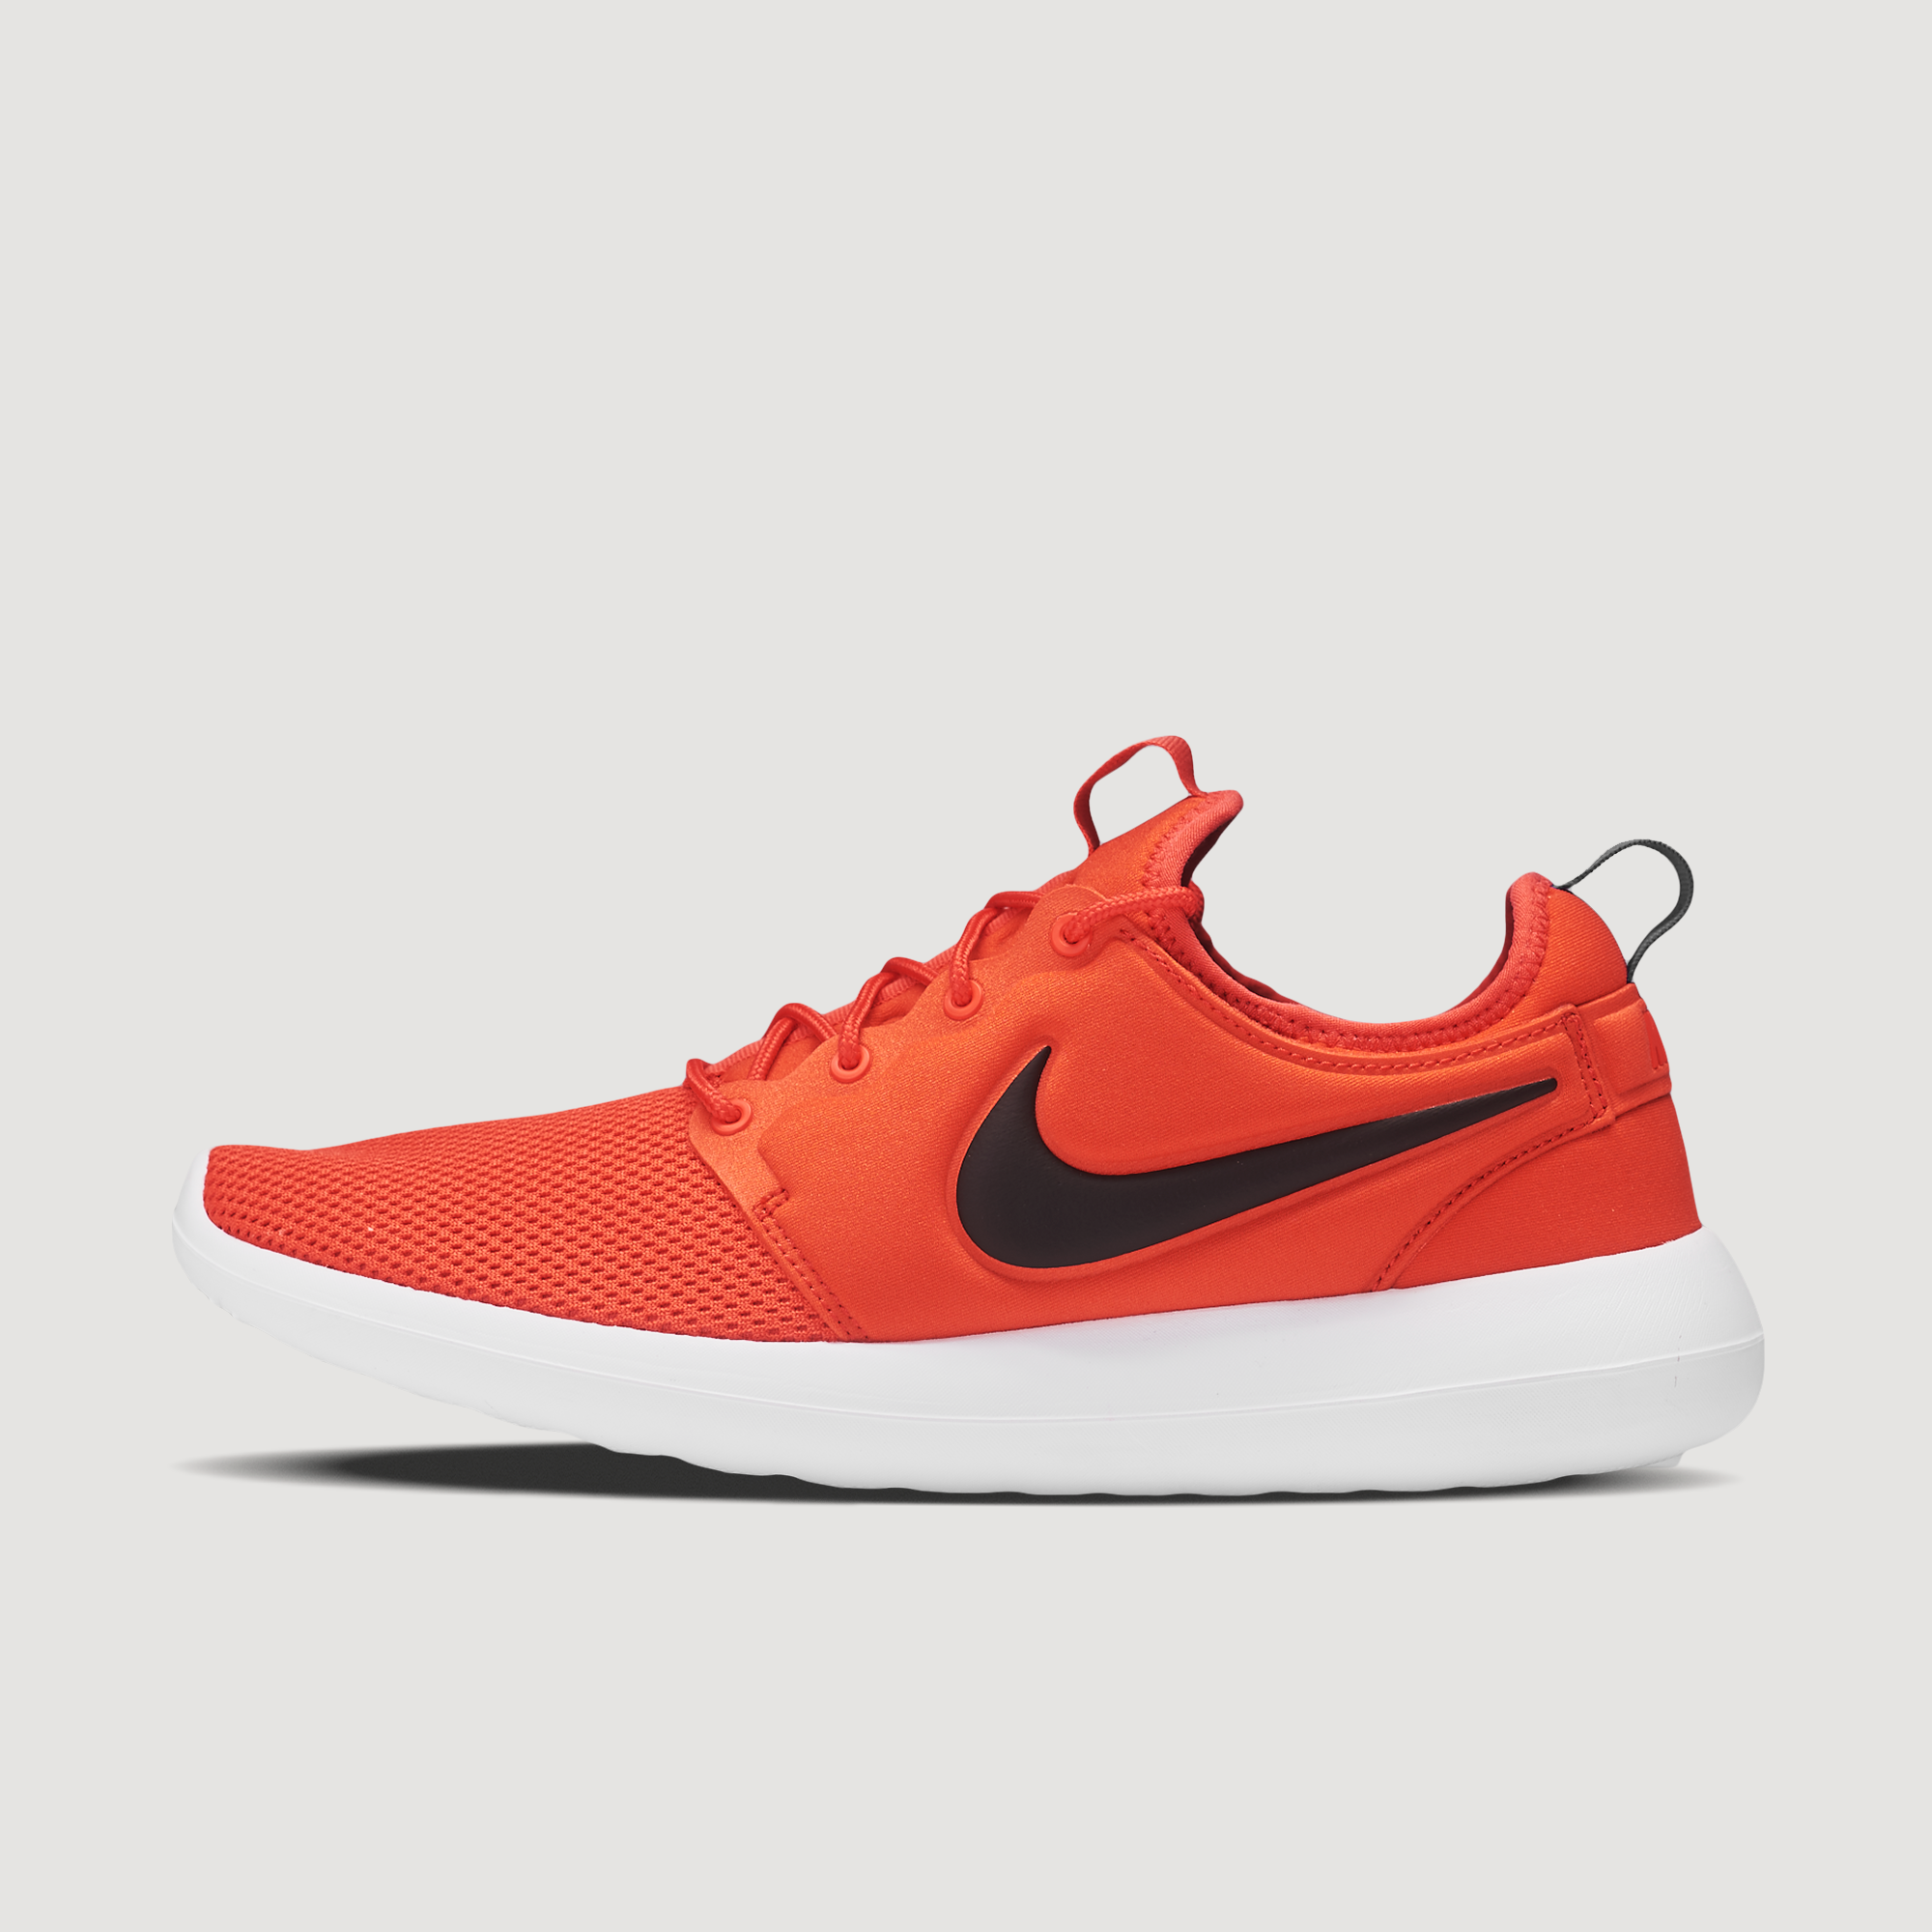 Roshe Two Shoe Pig Shoes